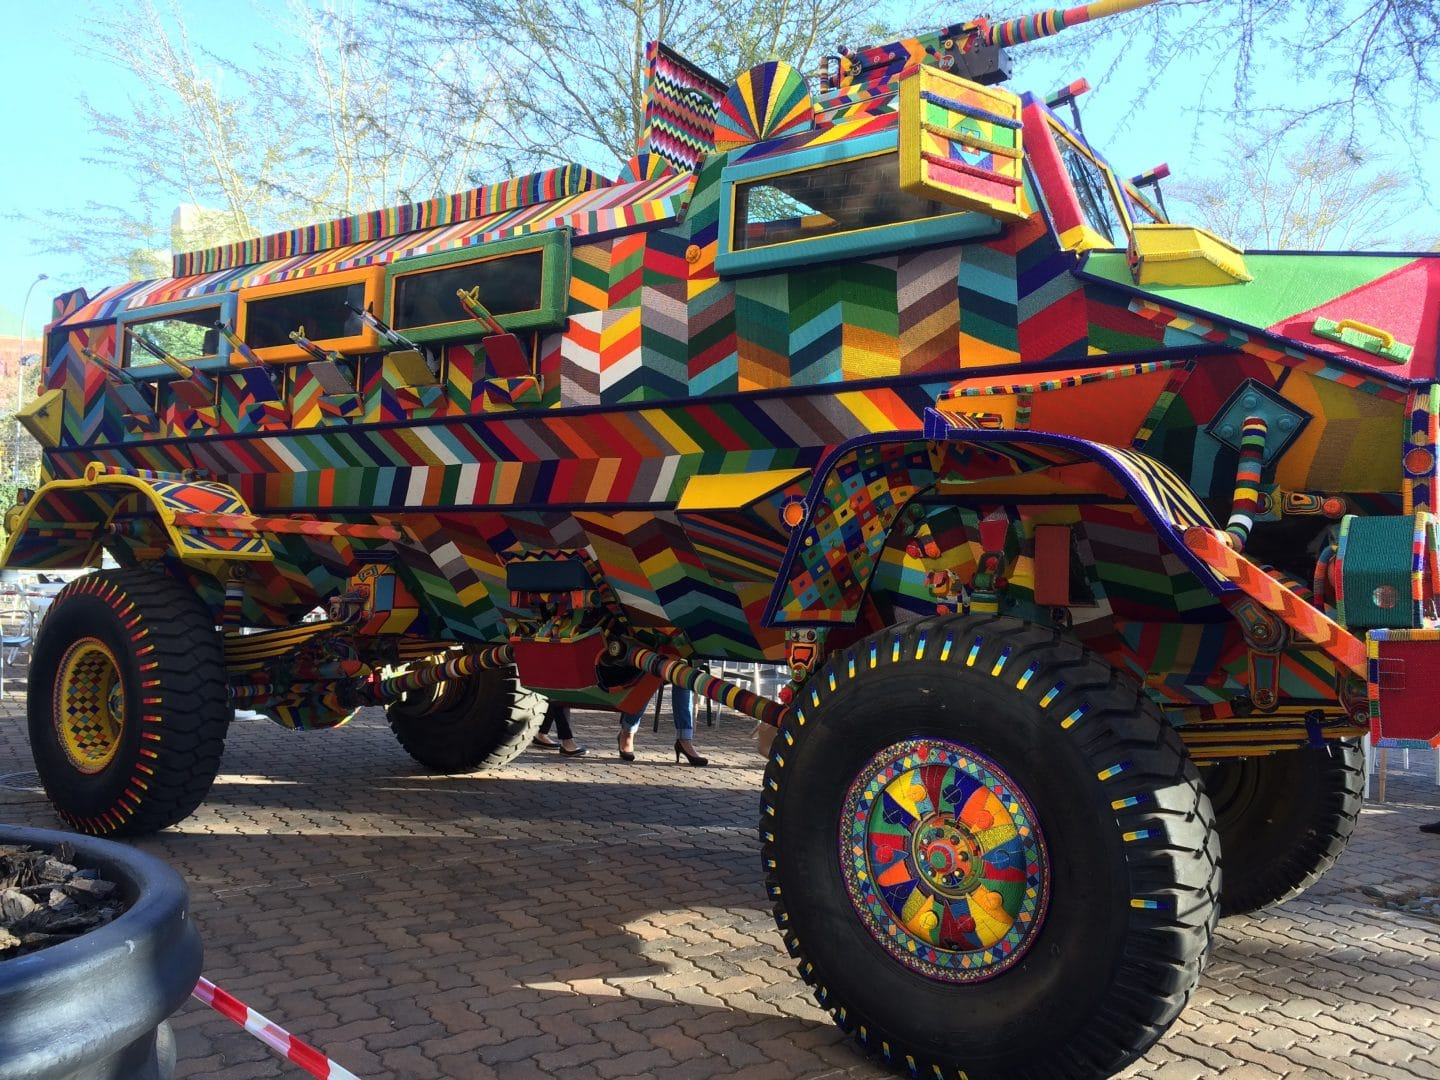 A Technicolor Armored Vehicle Arrives In A San Francisco Parking Lot